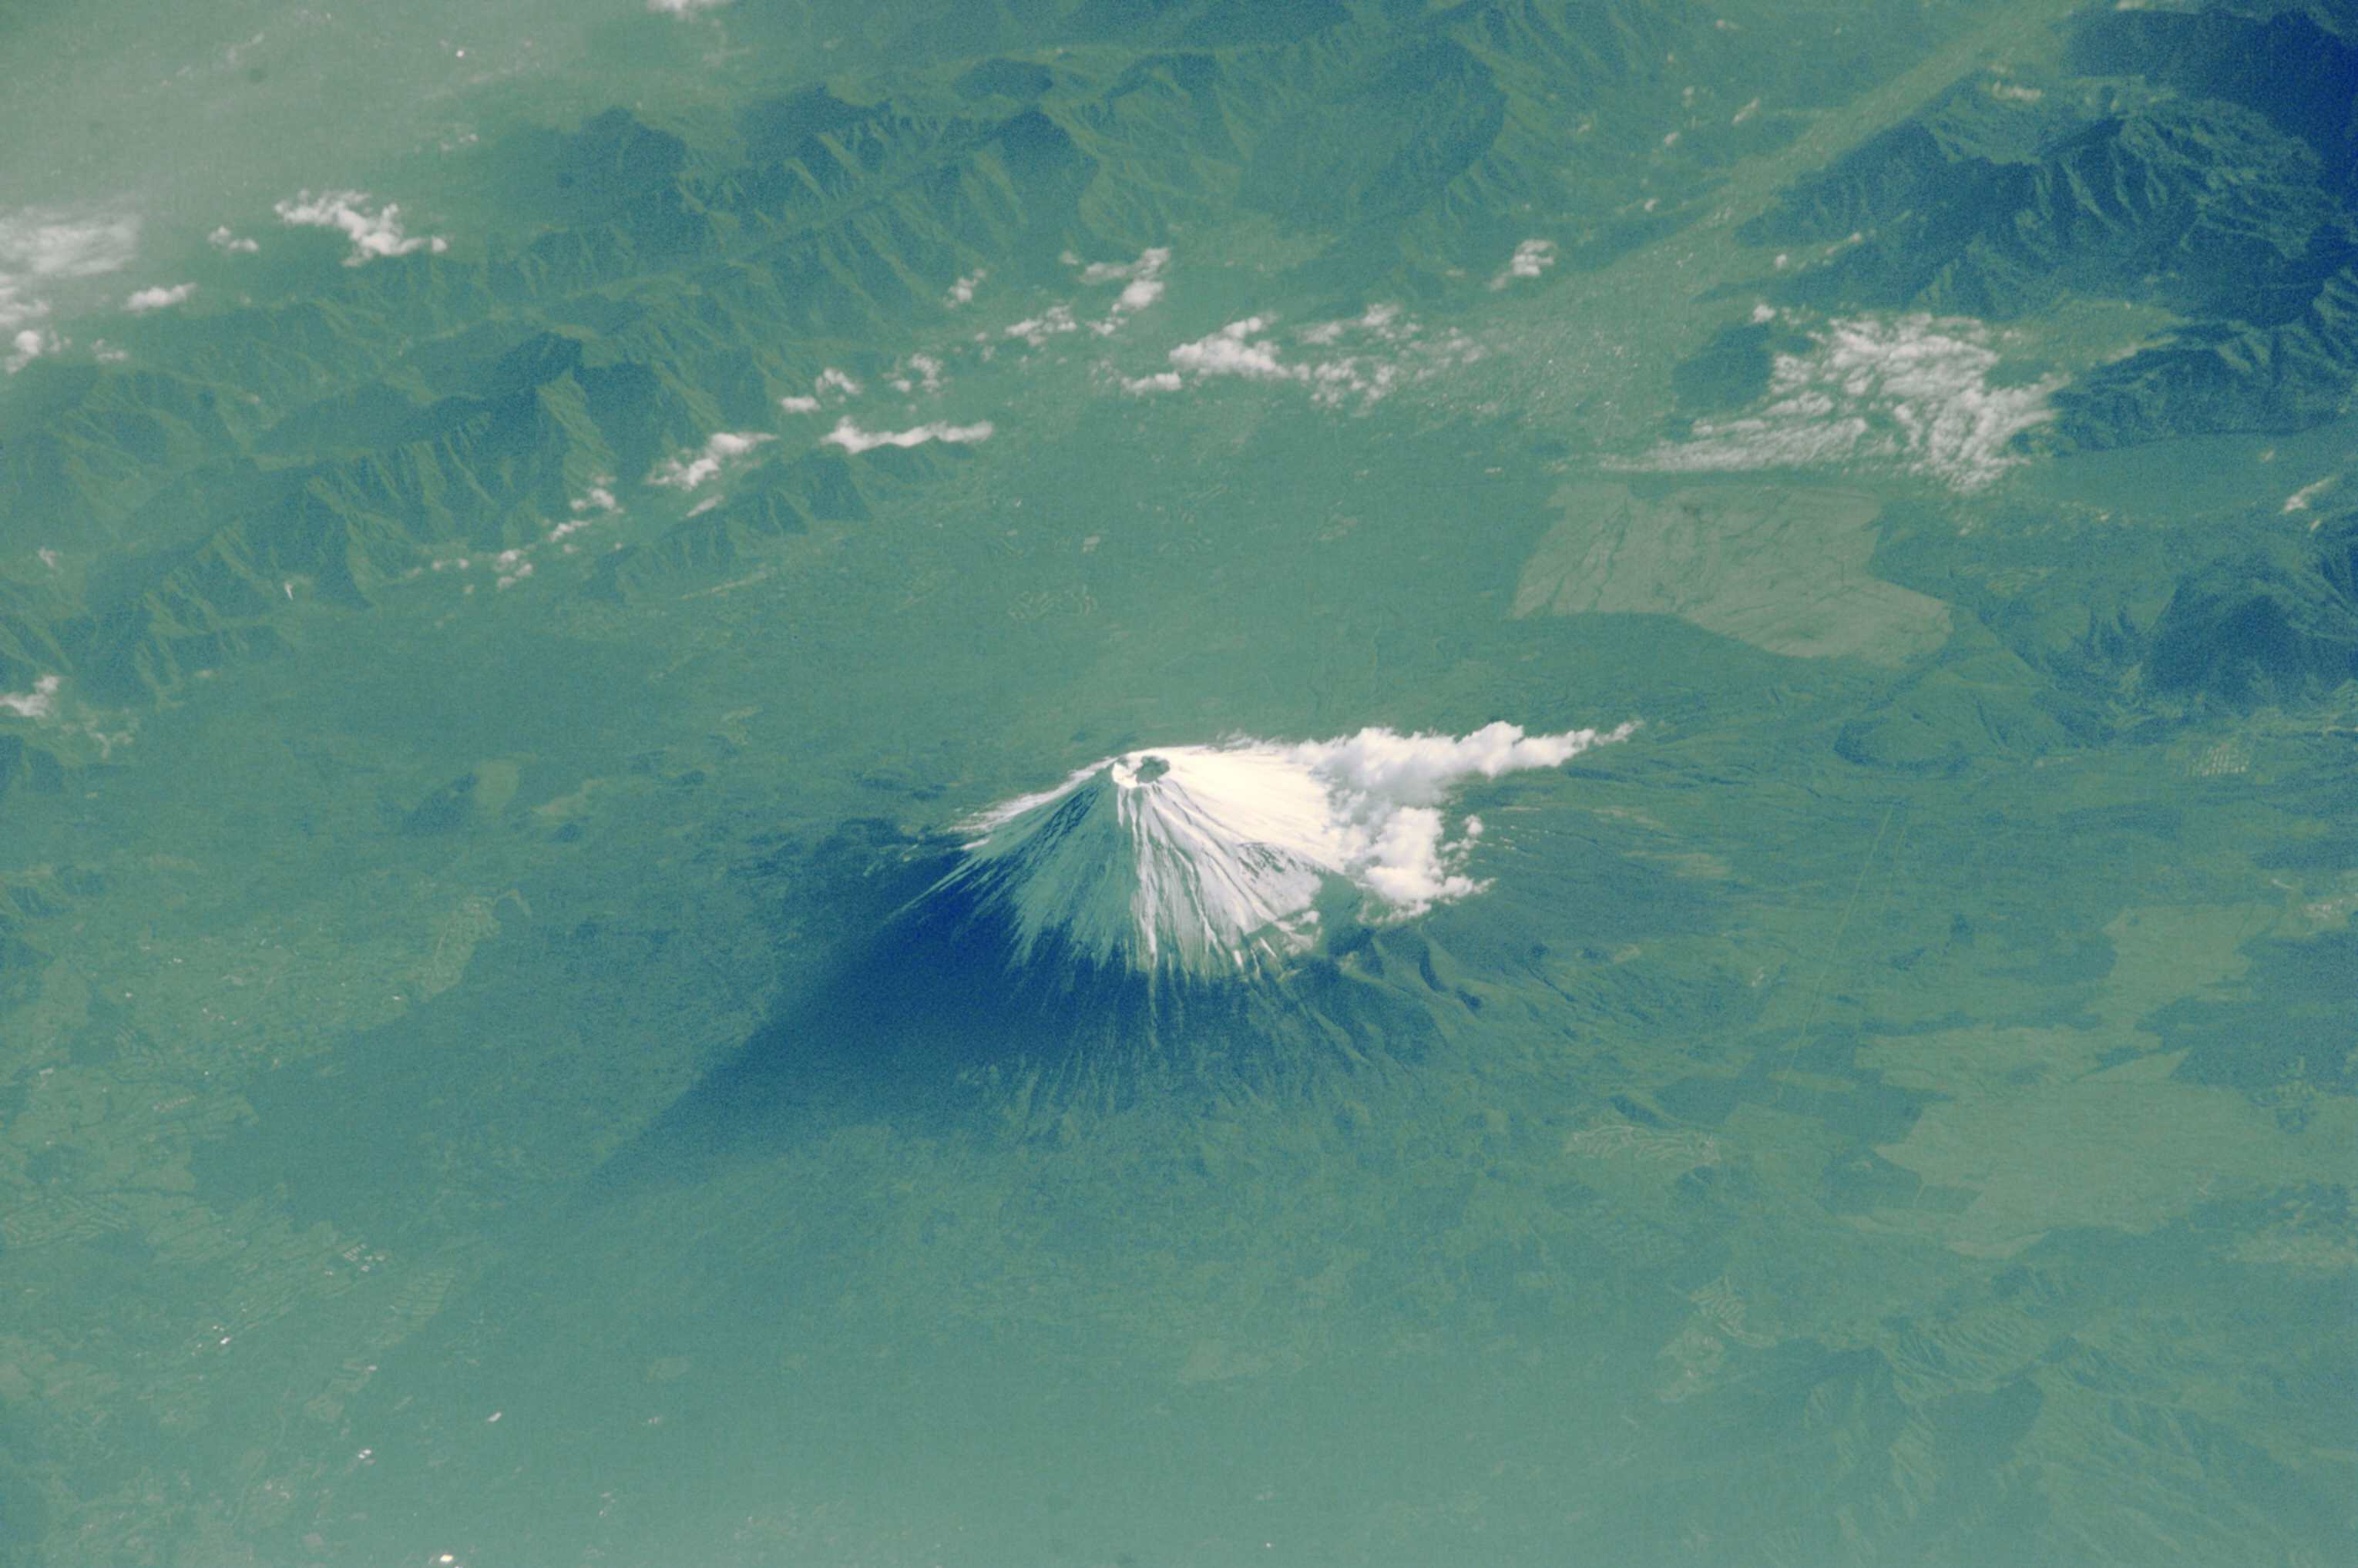 A photo of Mount Fuji taken from the International Space Station